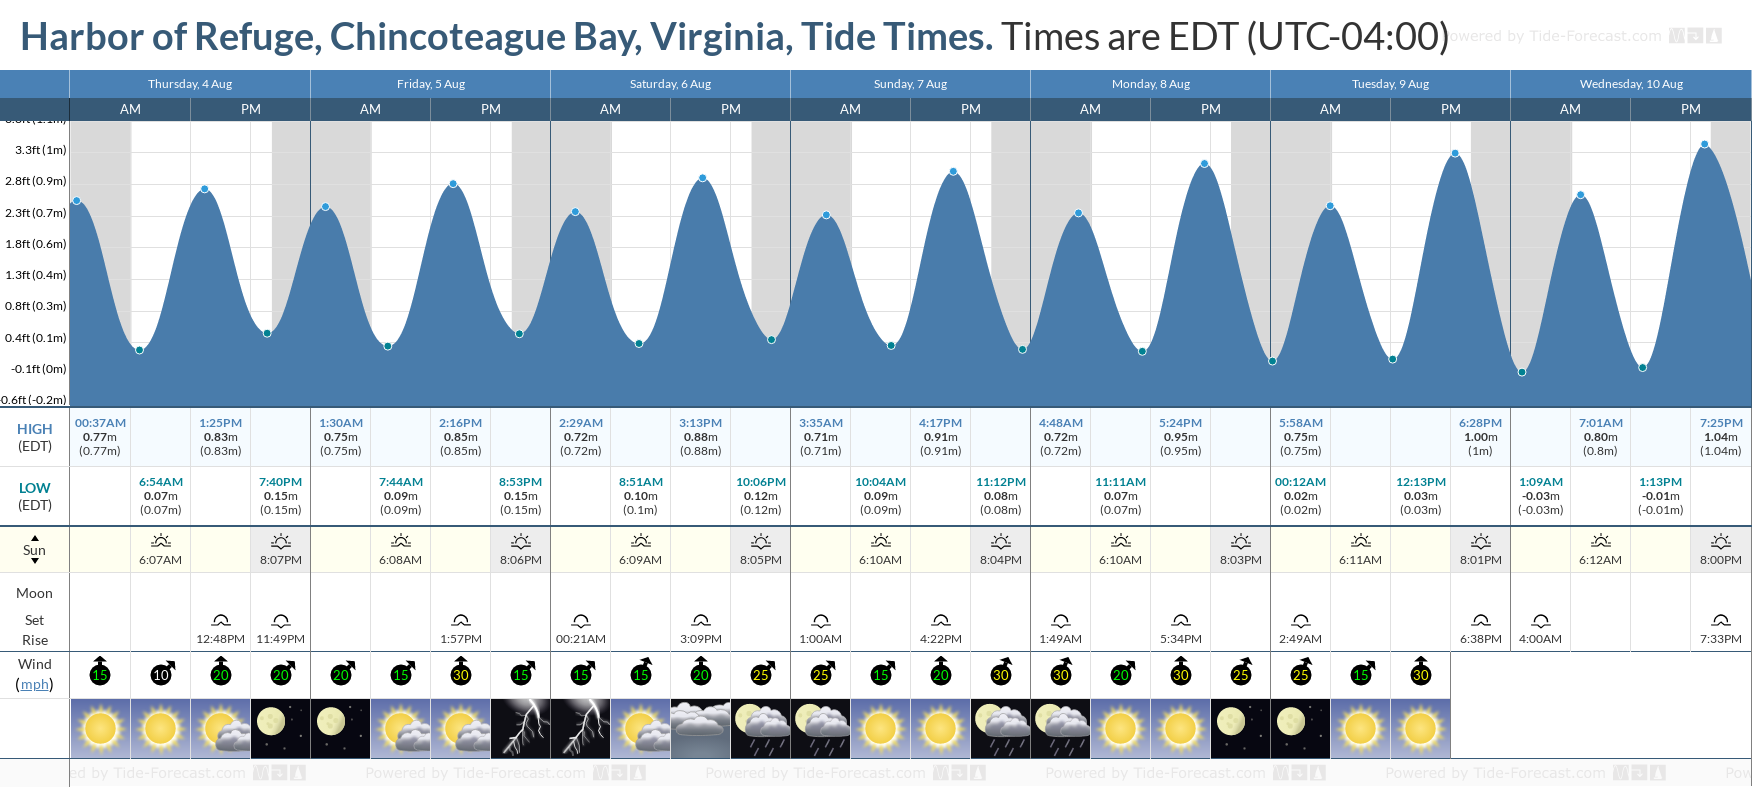 Harbor of Refuge, Chincoteague Bay, Virginia Tide Chart including high and low tide tide times for the next 7 days